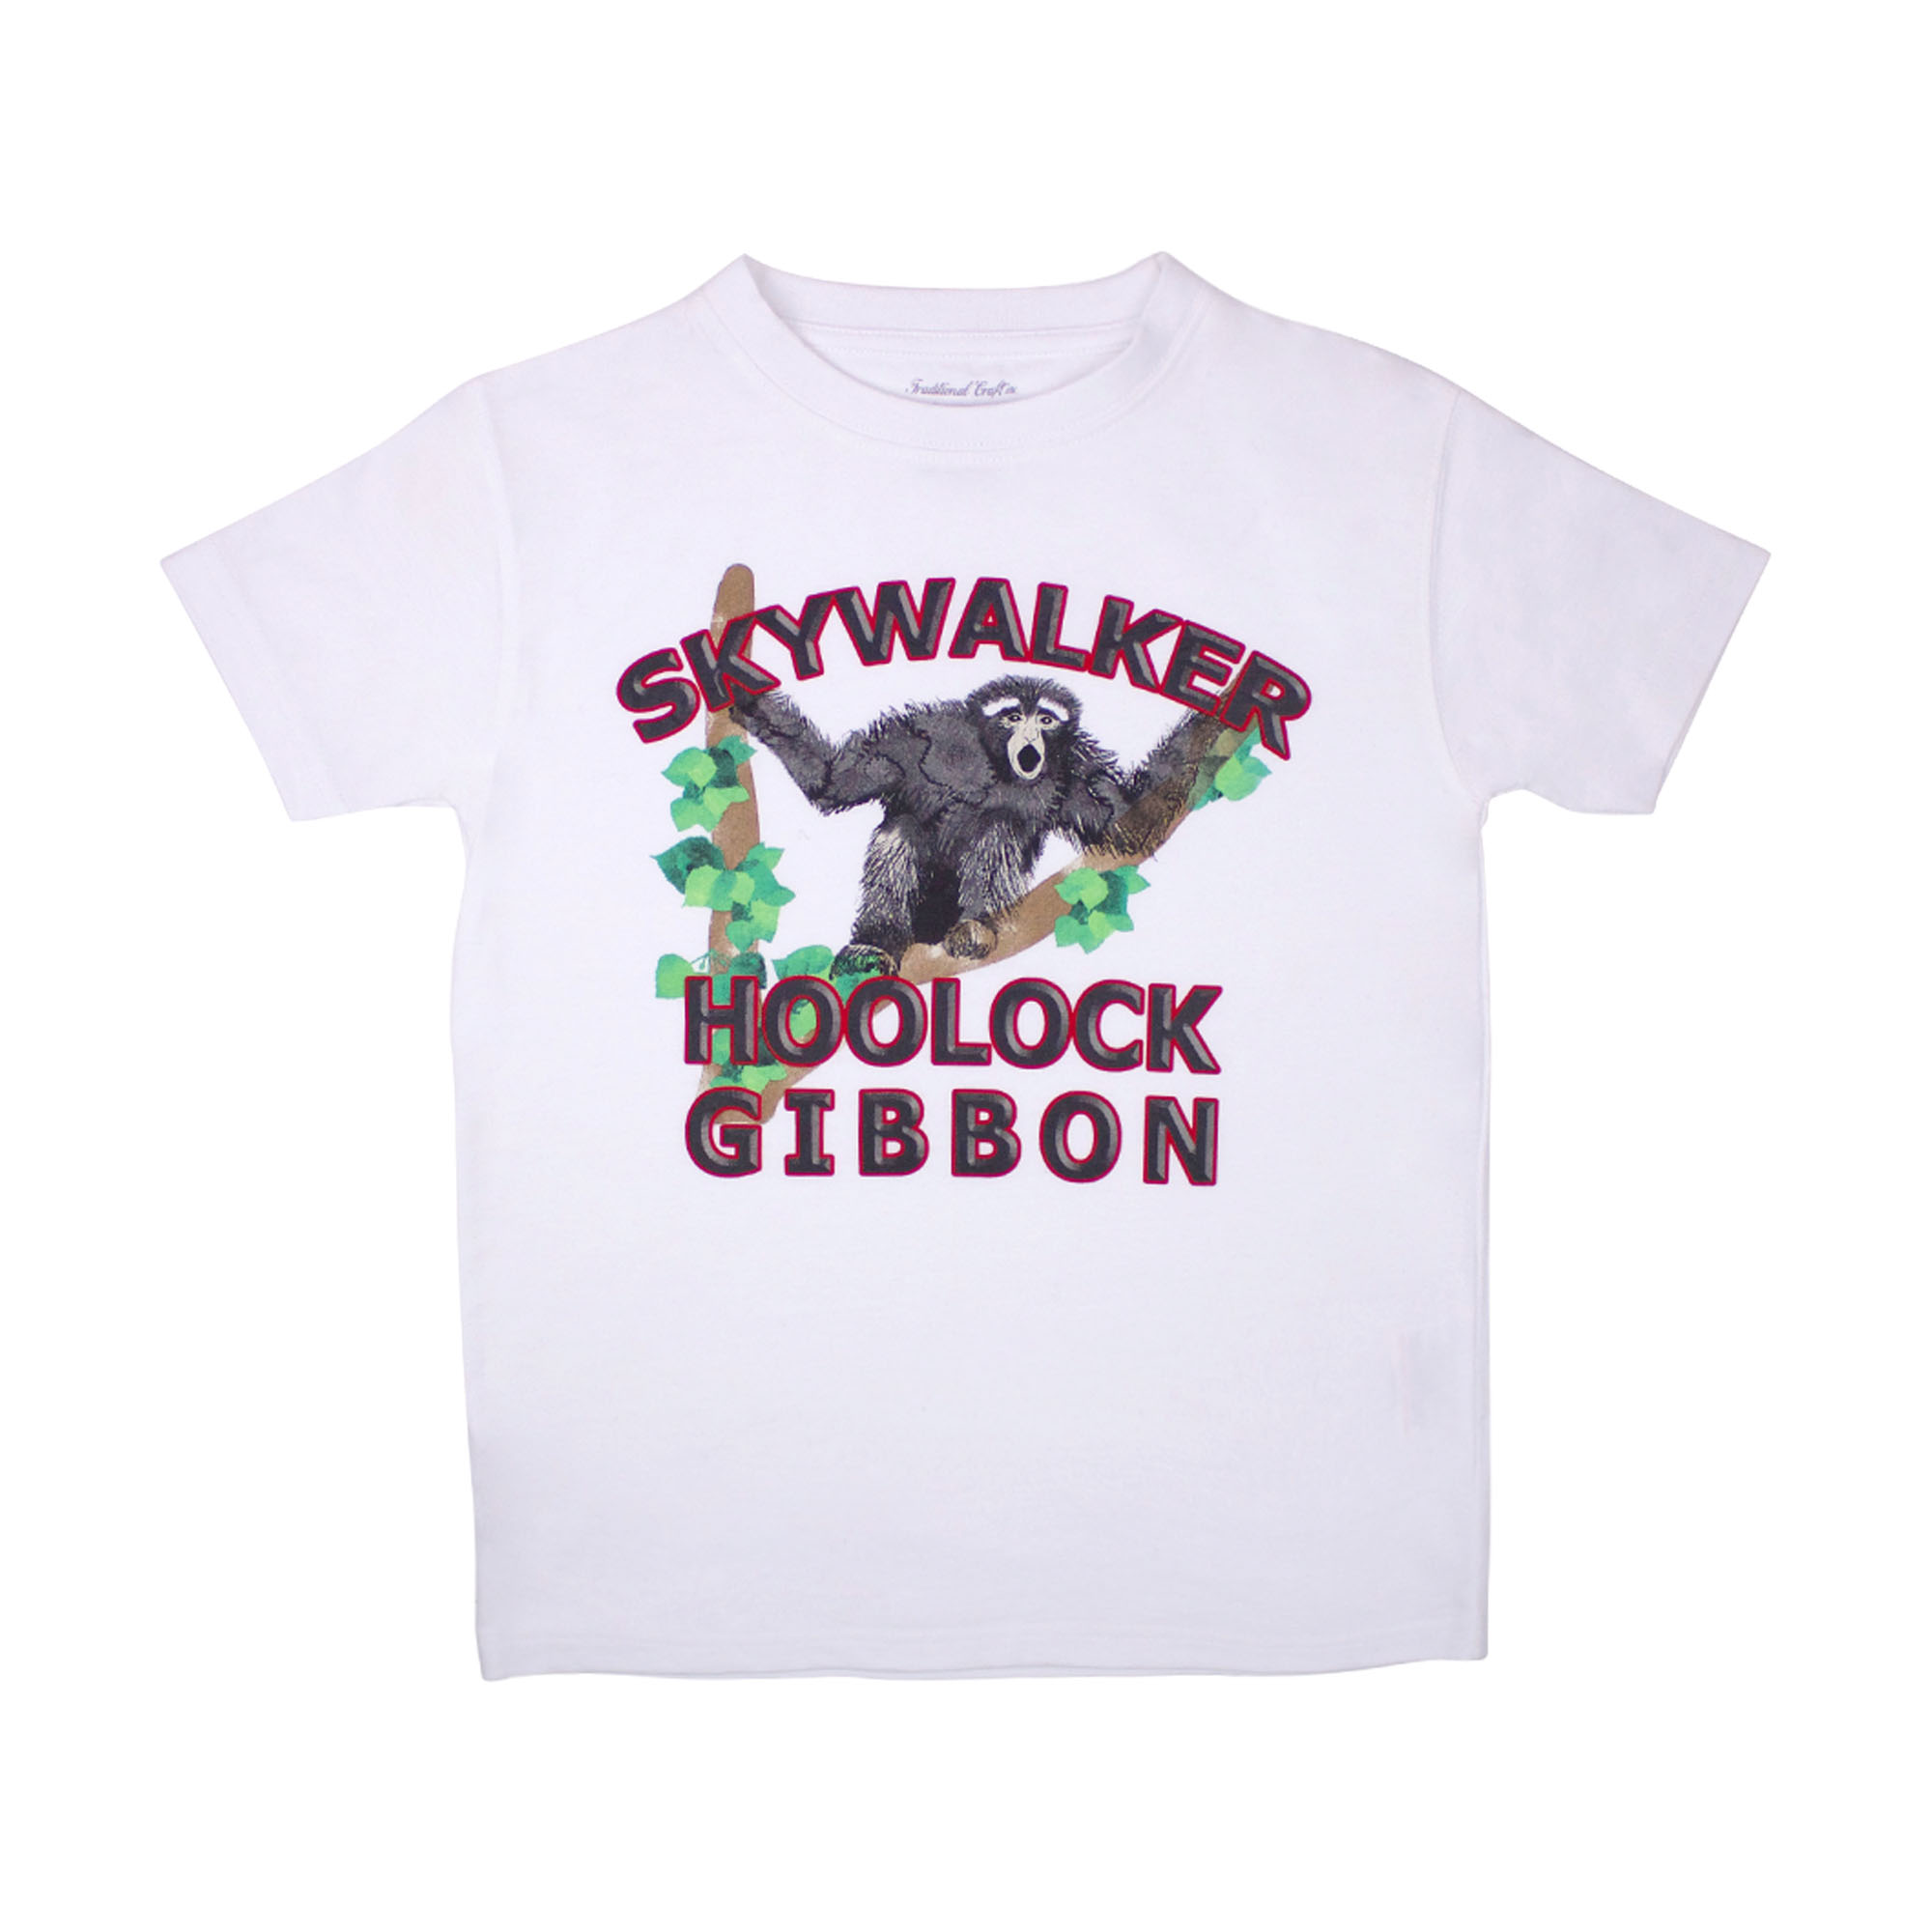 Children's gibbon pyjama t-shirt